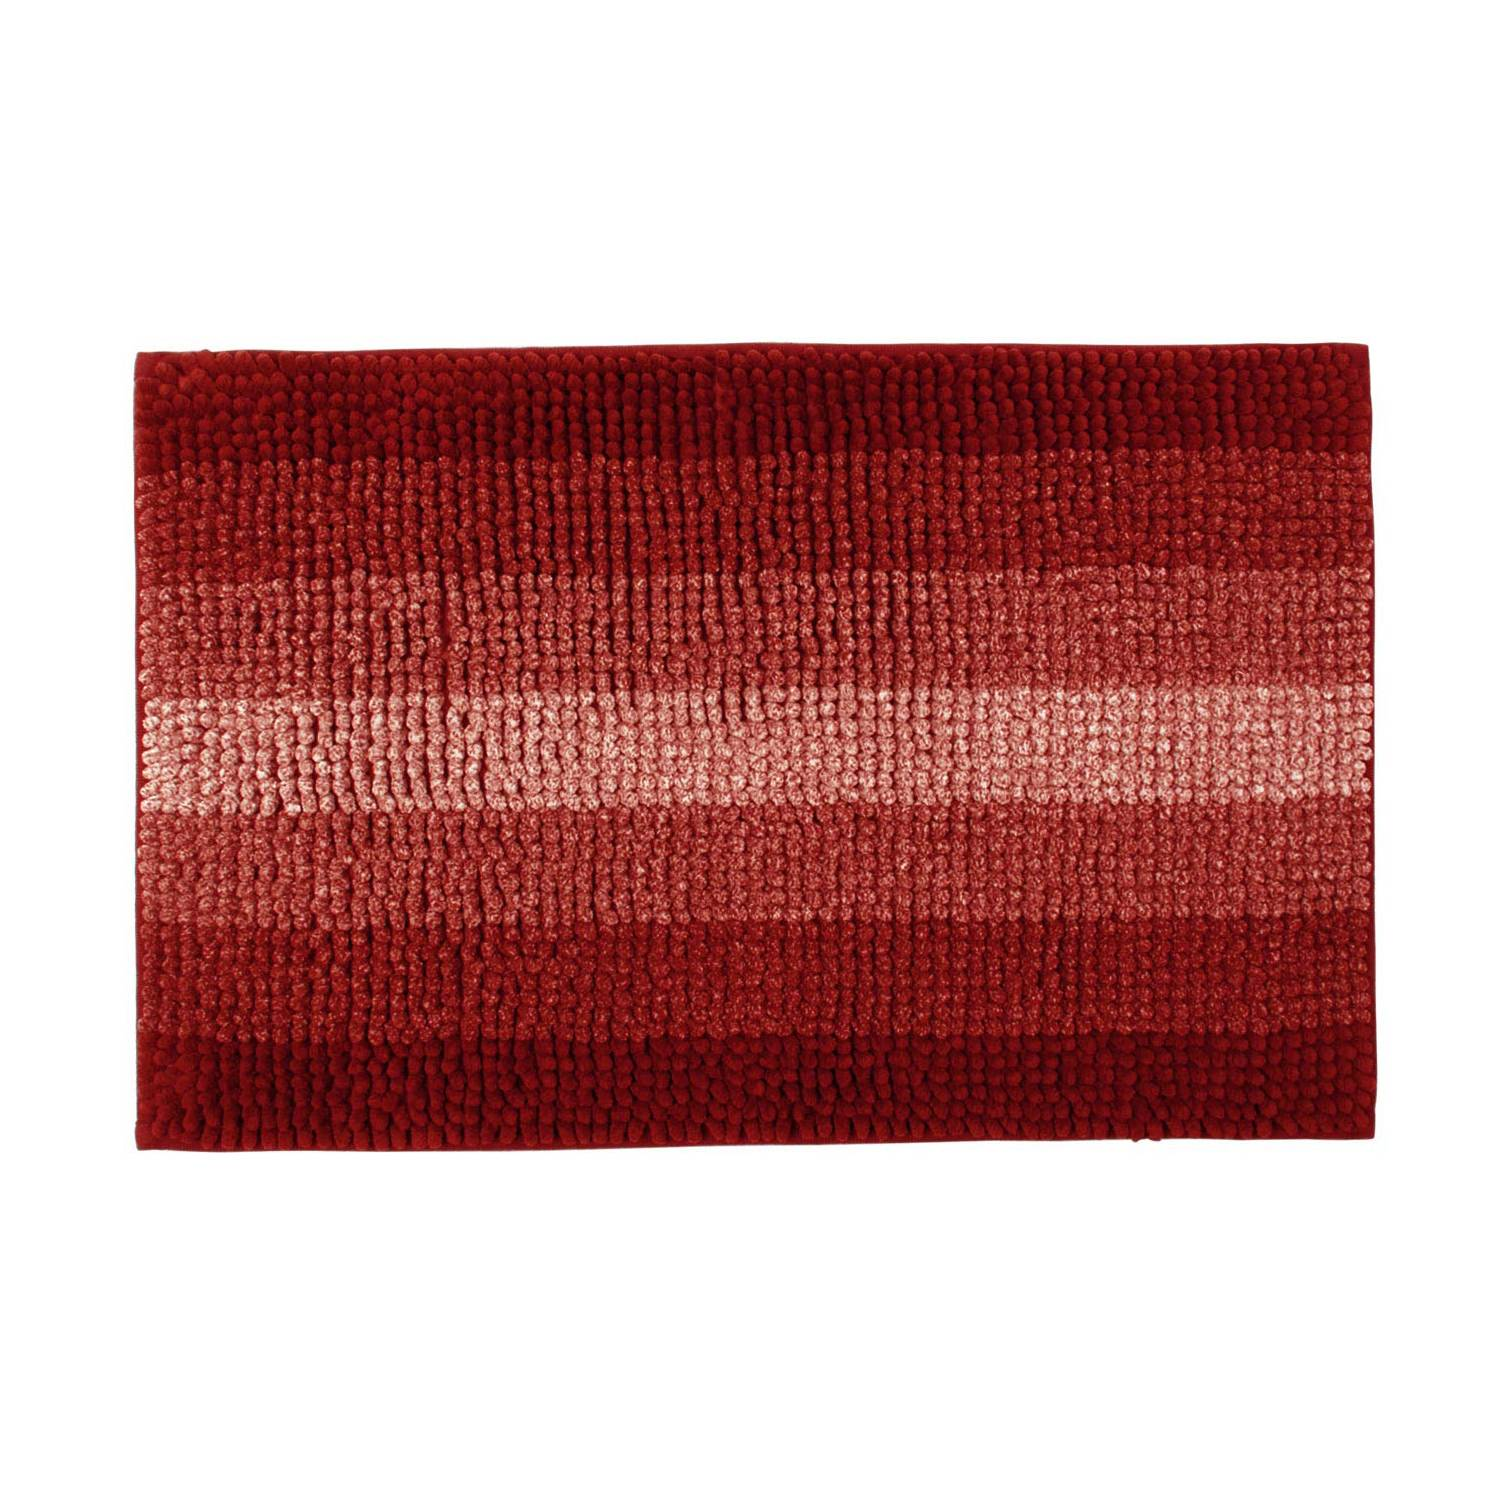 Red. AND007656. Size- 60x40 cm.